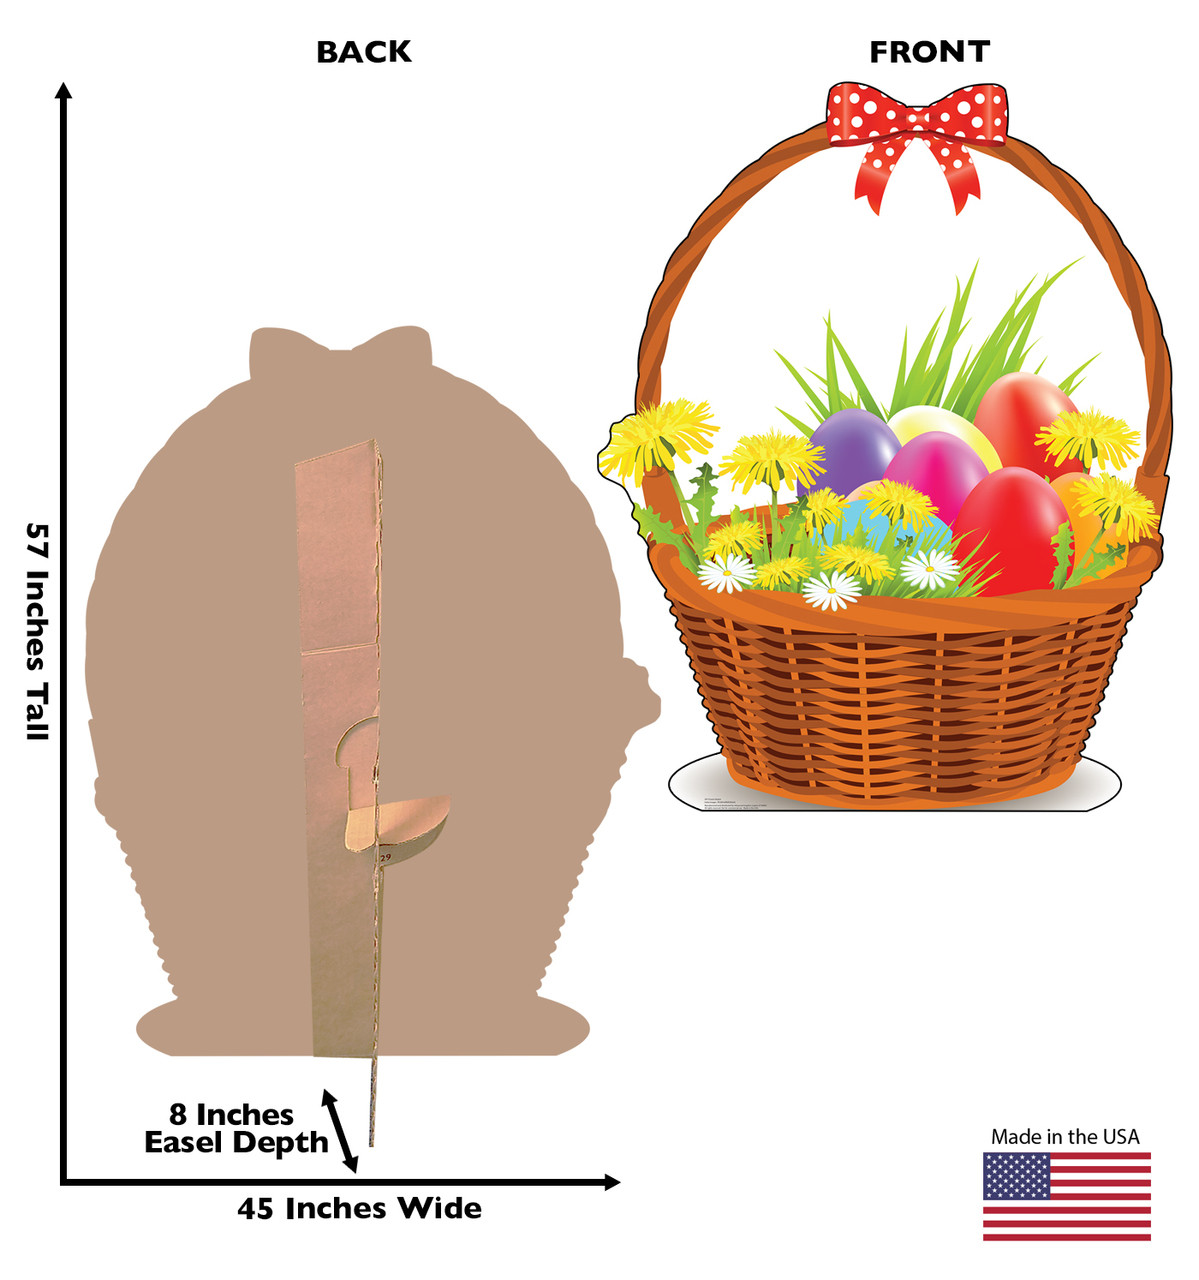 Life-size cardboard standee of an Easter Basket with back and front dimensions.